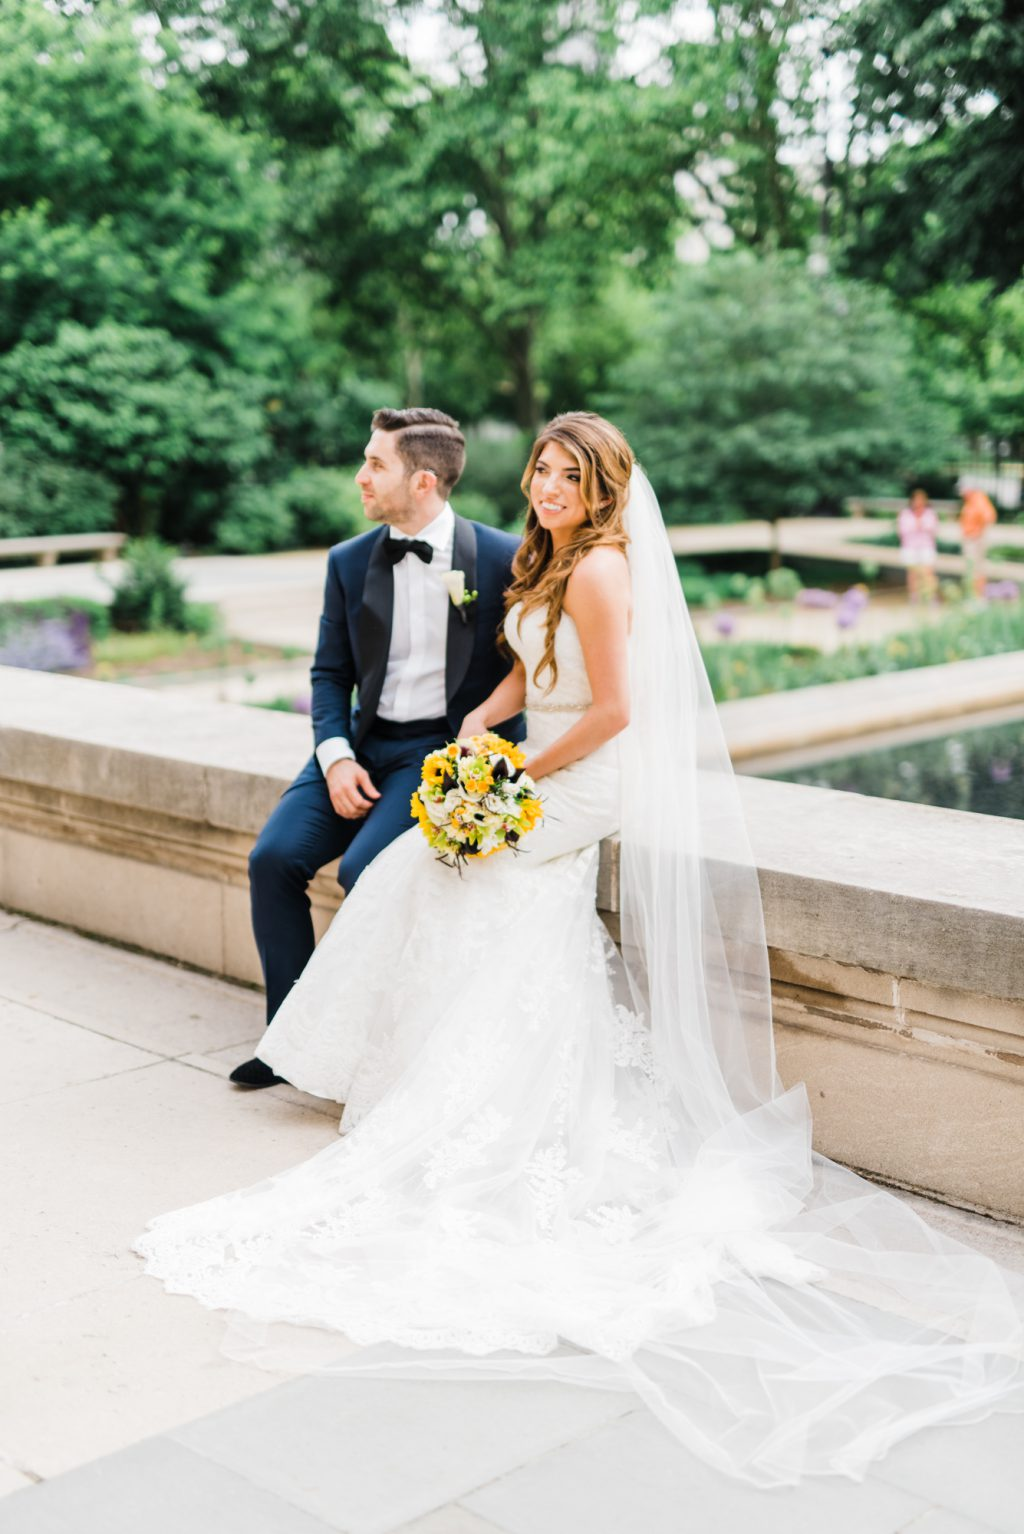 haleyrichterphoto-front-and-palmer-spring-wedding-rodin-museum-loews-hotel-philadelphia-089